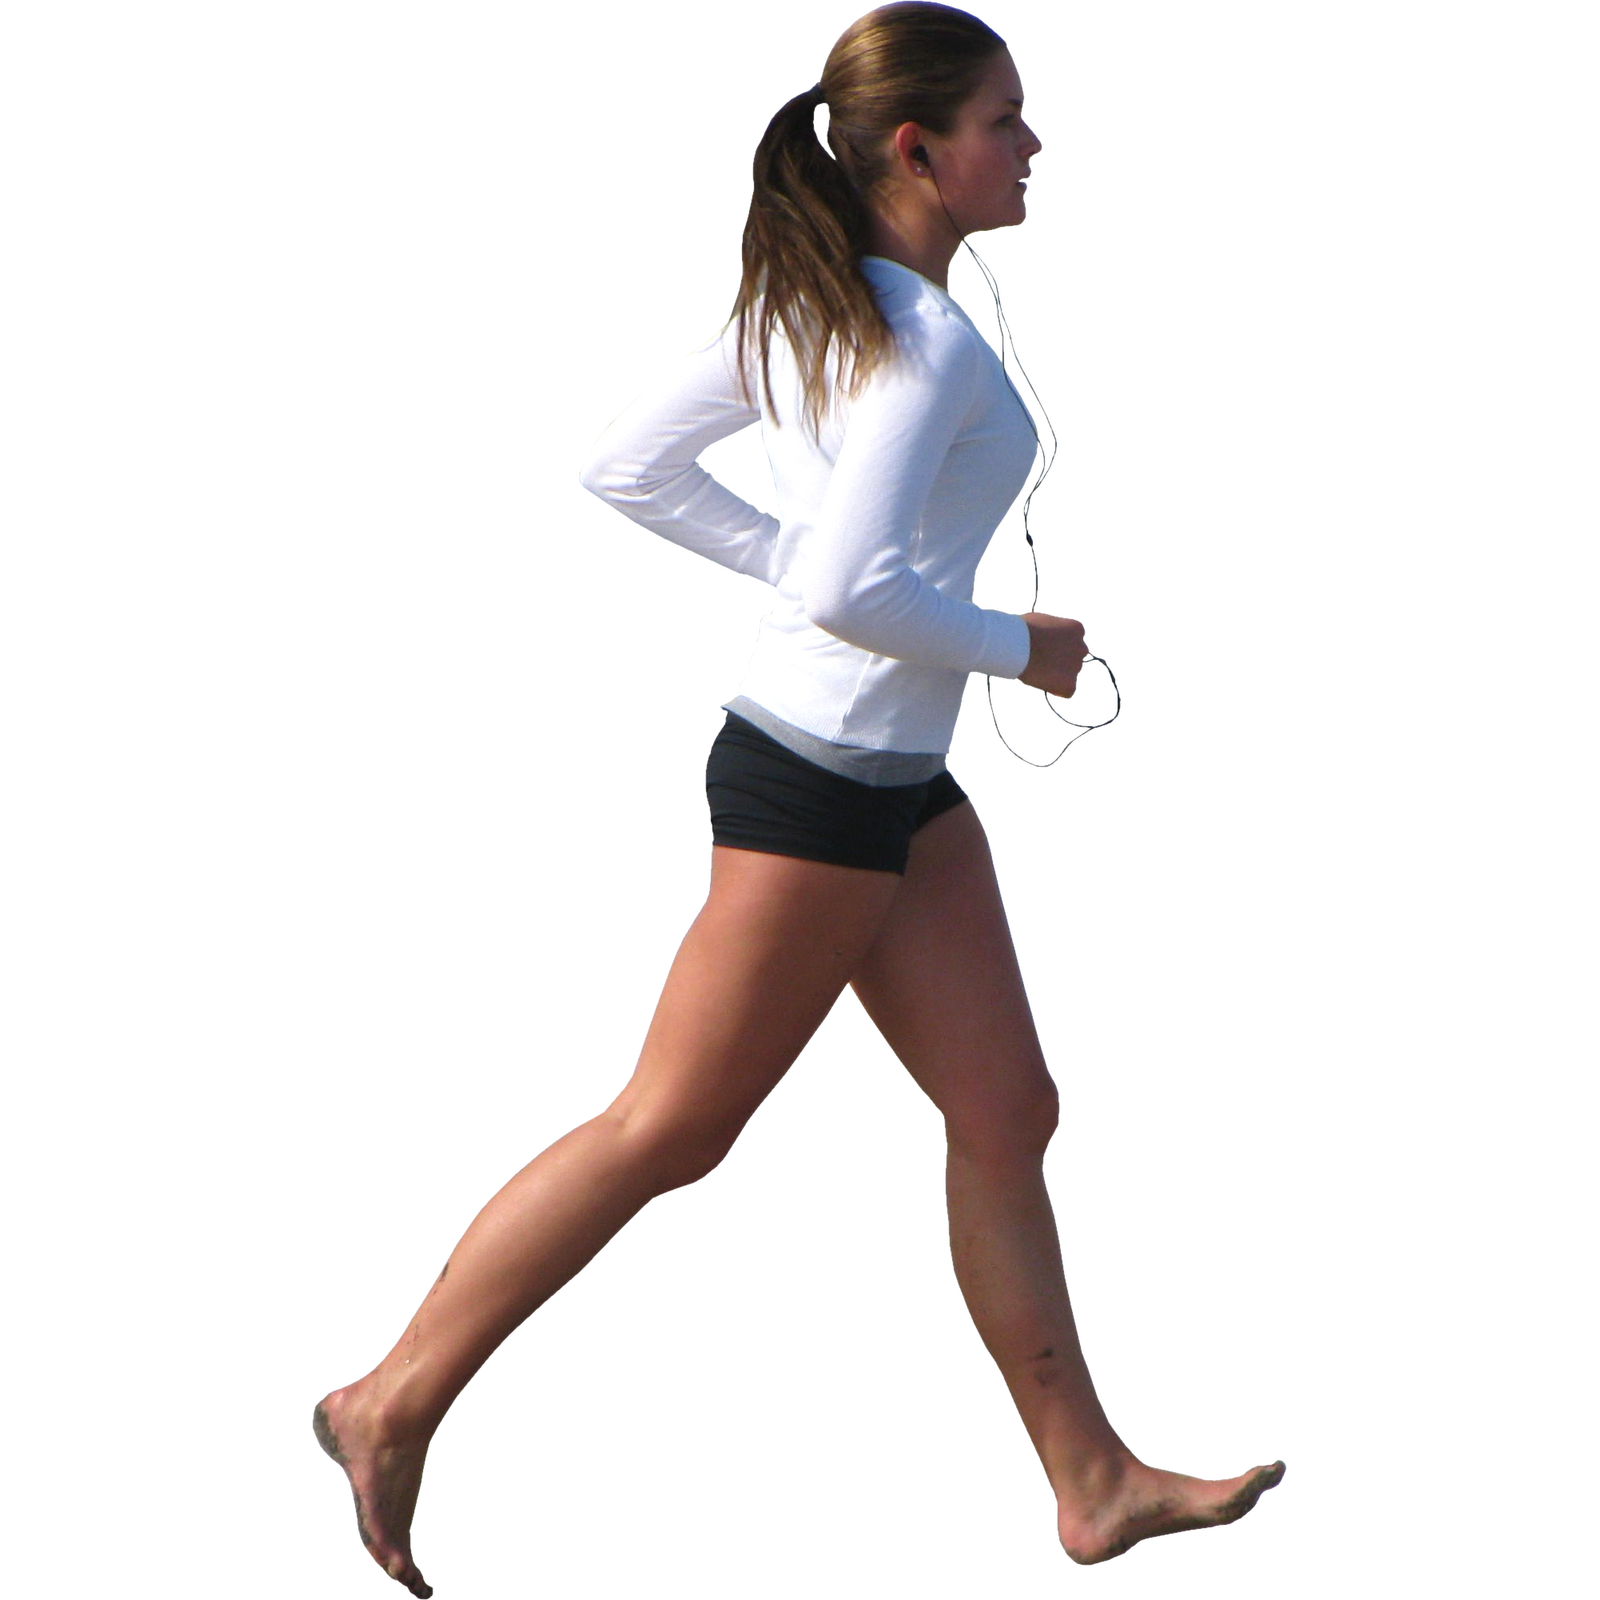 Running man PNG image, running woman PNG free download.